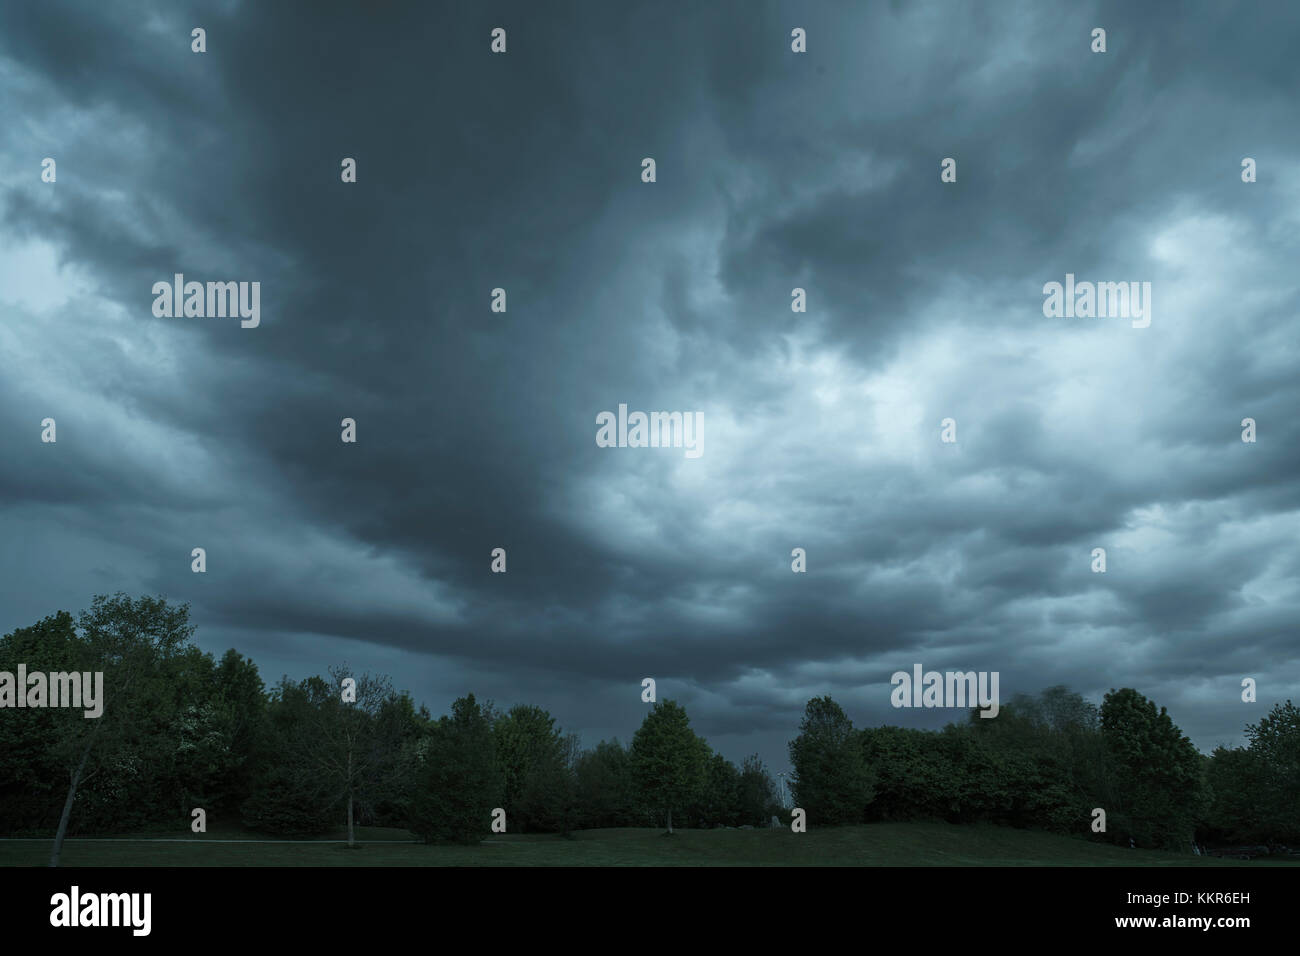 Dark clouds above a park - Stock Image